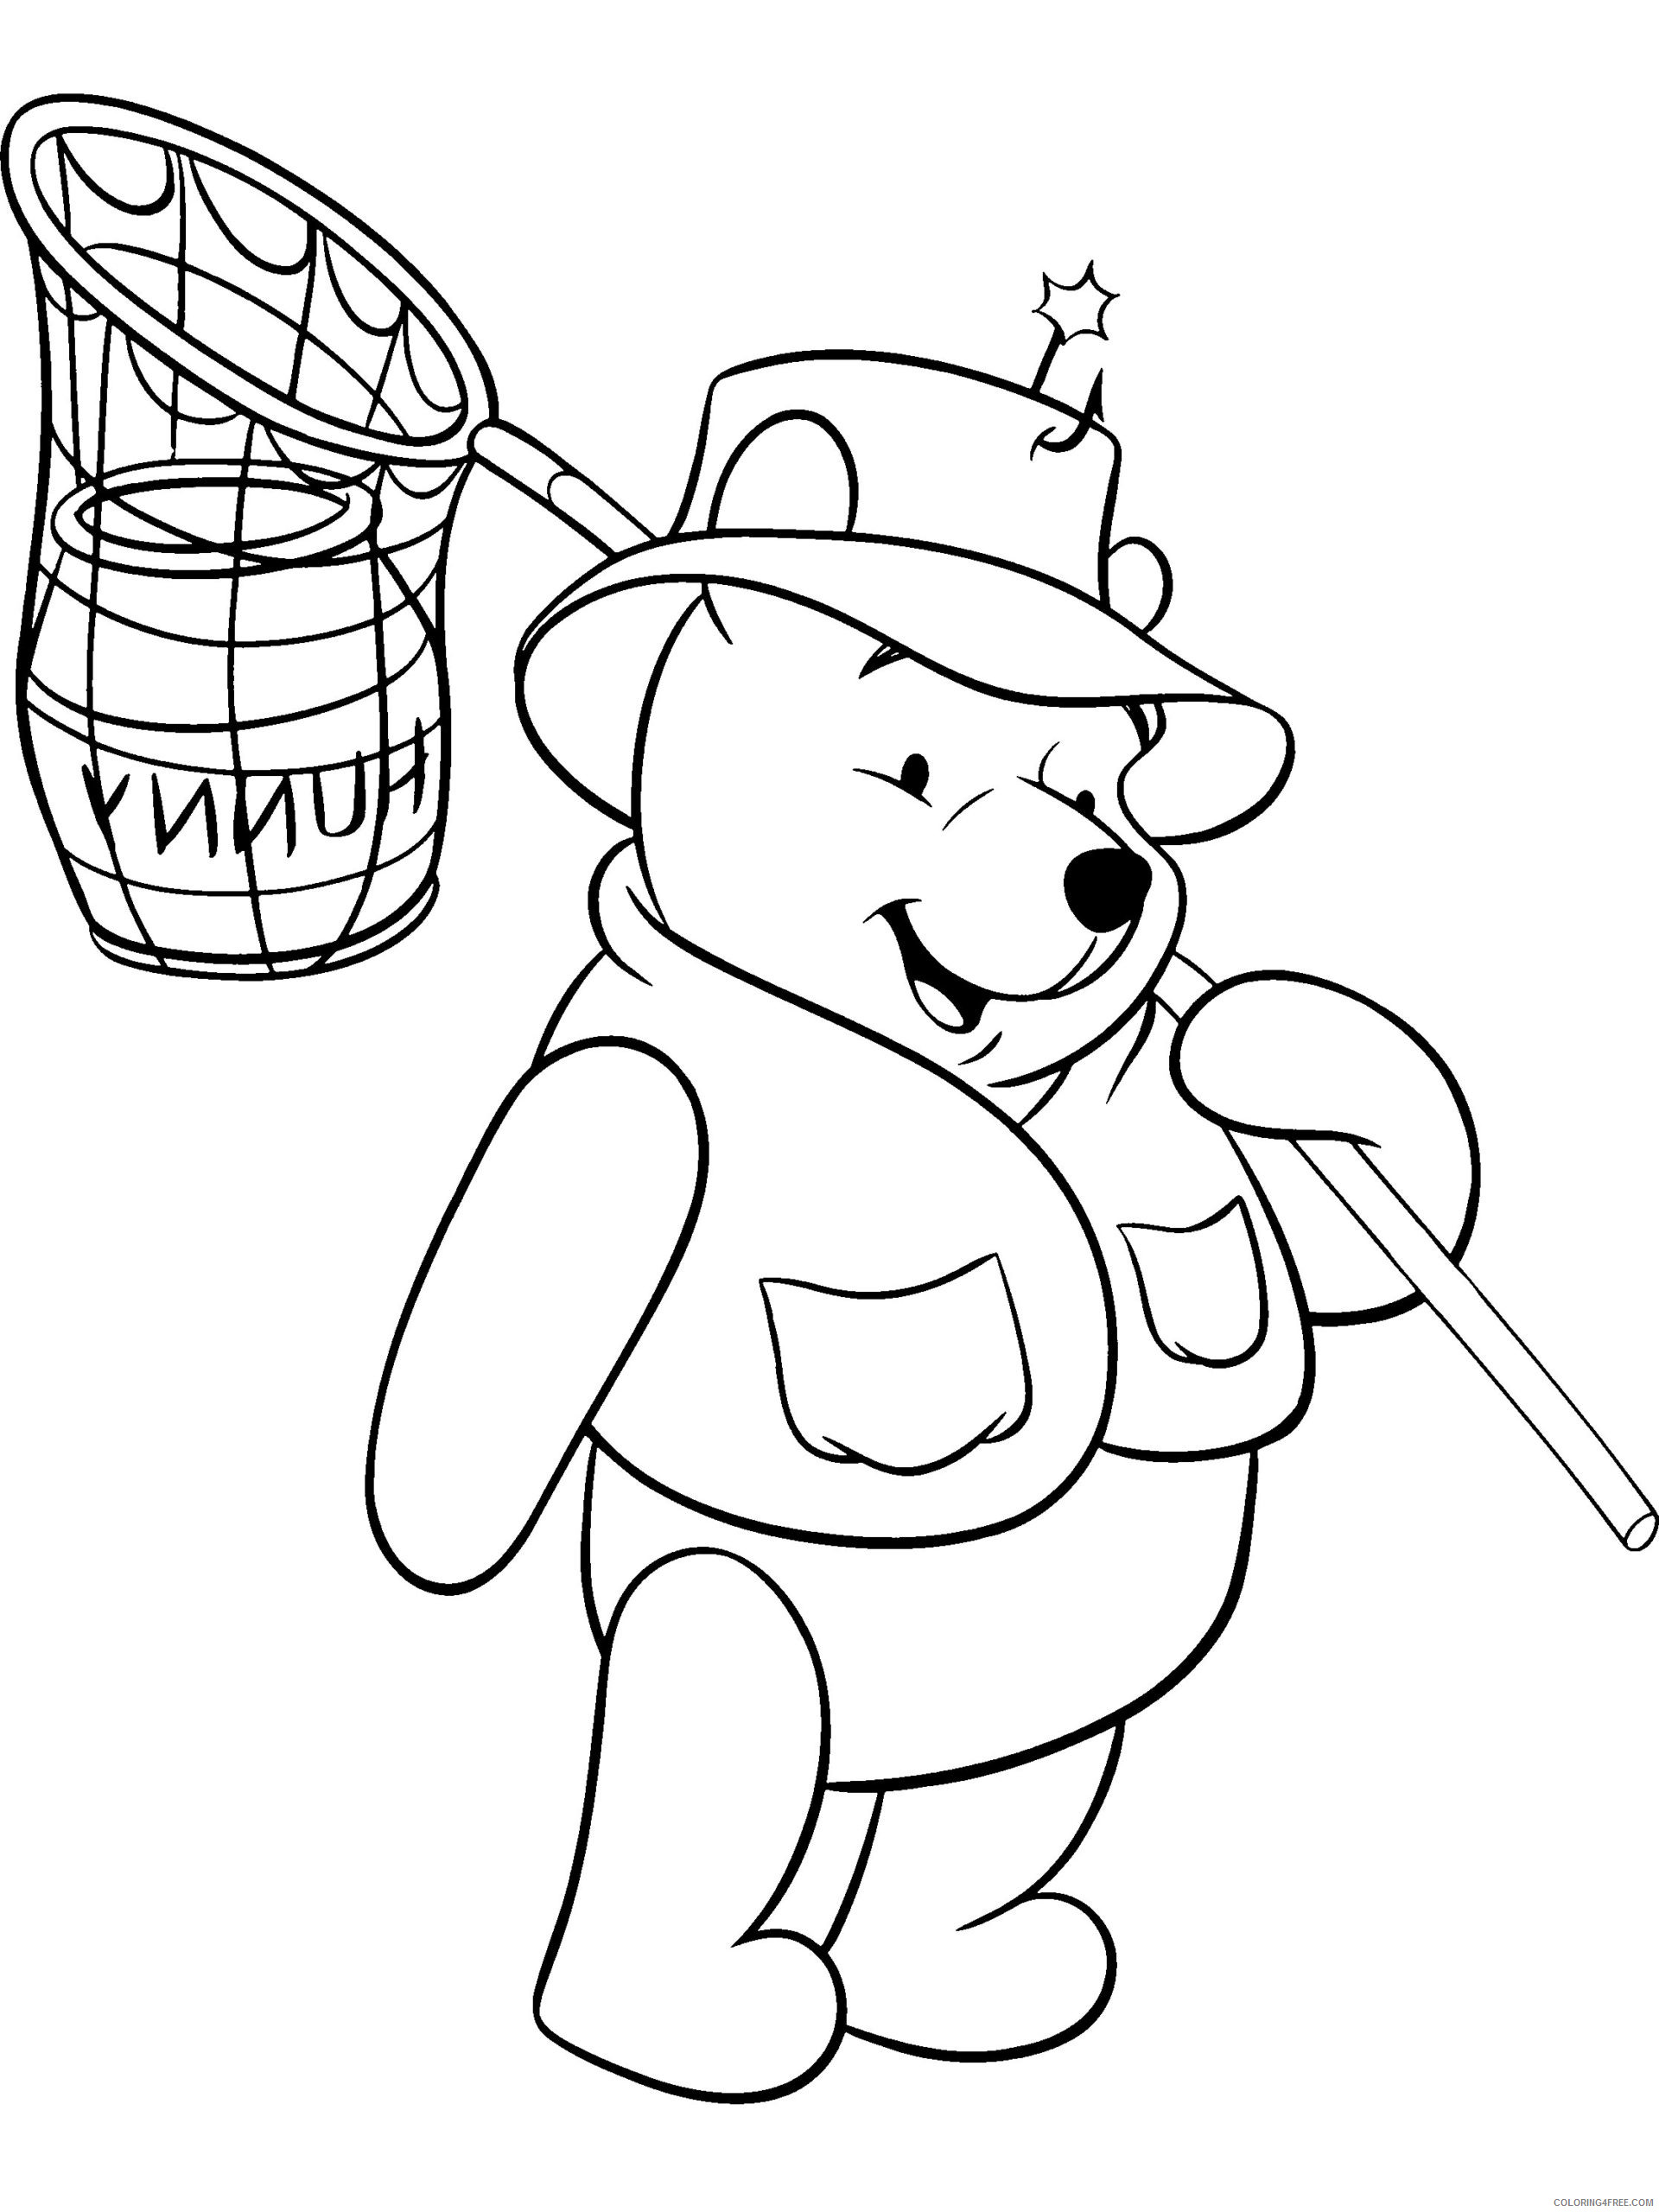 Winnie The Pooh Coloring Pages Cartoons Free Winnie The Pooh For Kids Printable 2020 6962 Coloring4free Coloring4free Com